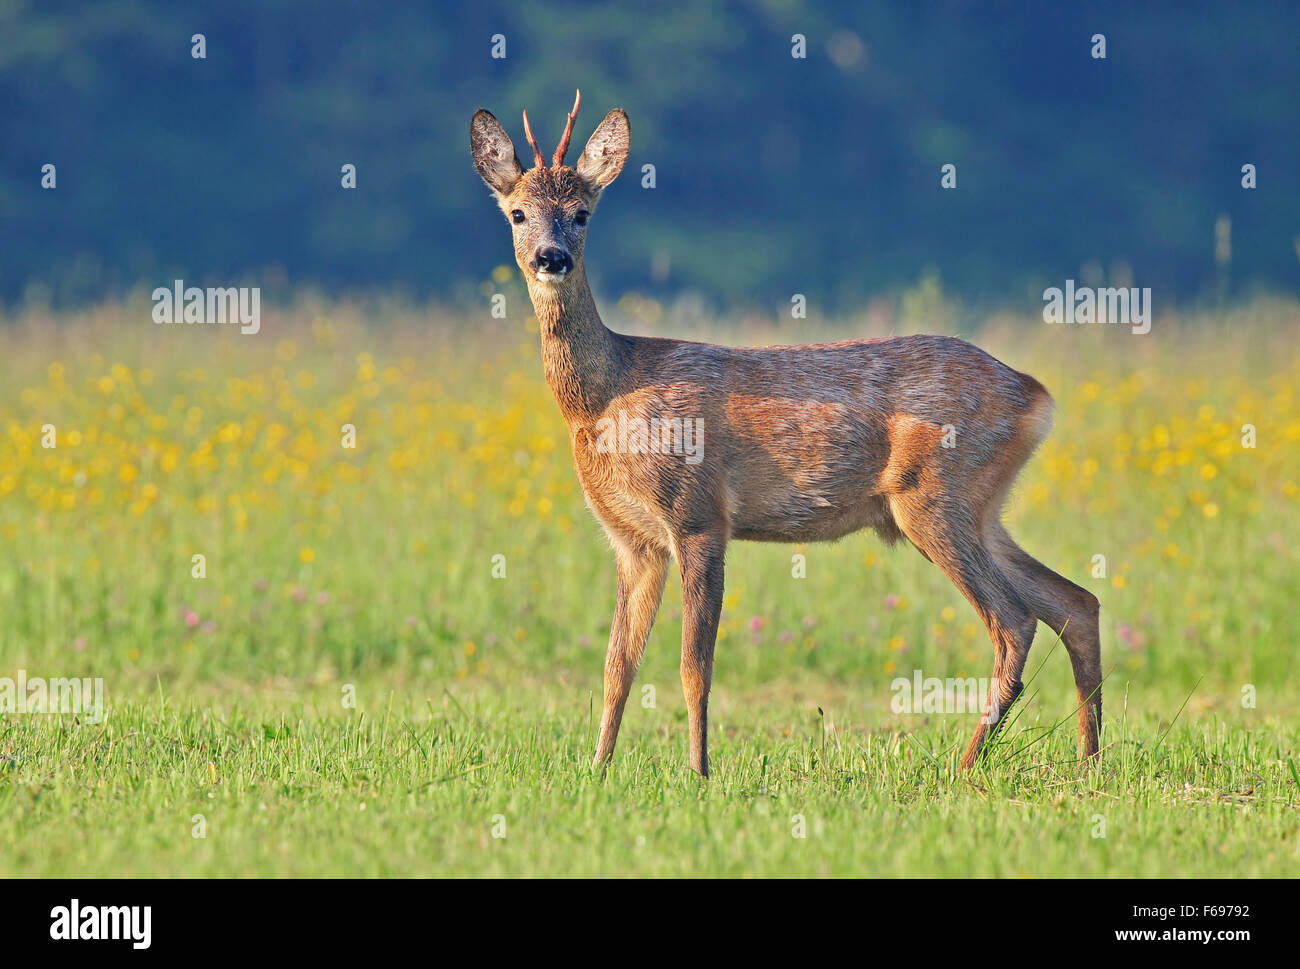 Photo of male roe deer in a field - Stock Image